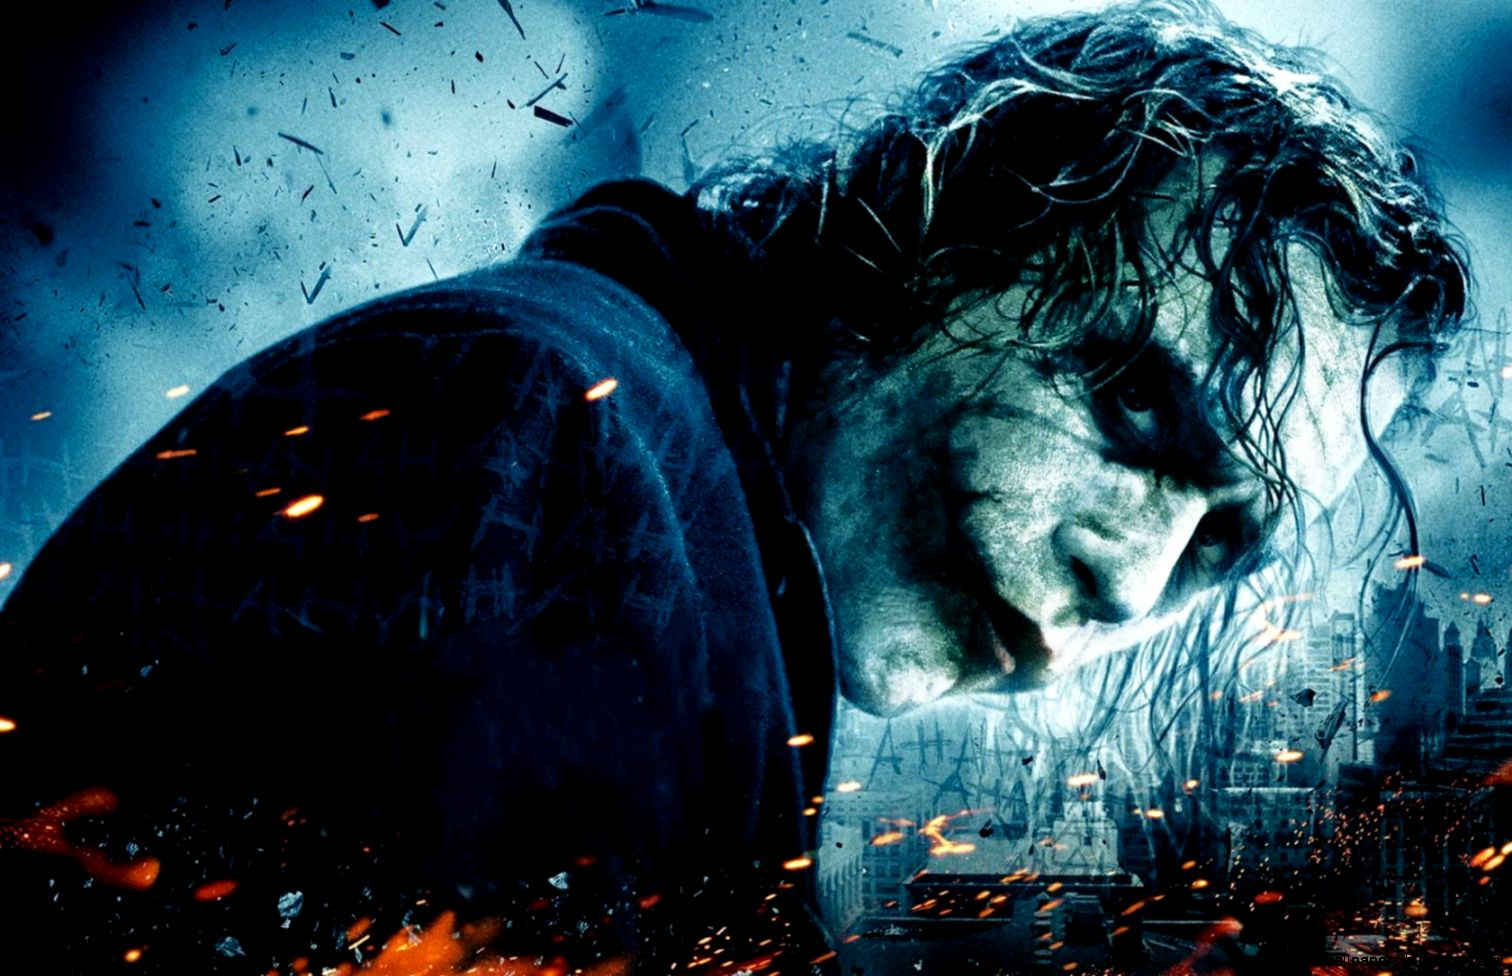 417 The Dark Knight HD Wallpapers  Backgrounds   Wallpaper Abyss